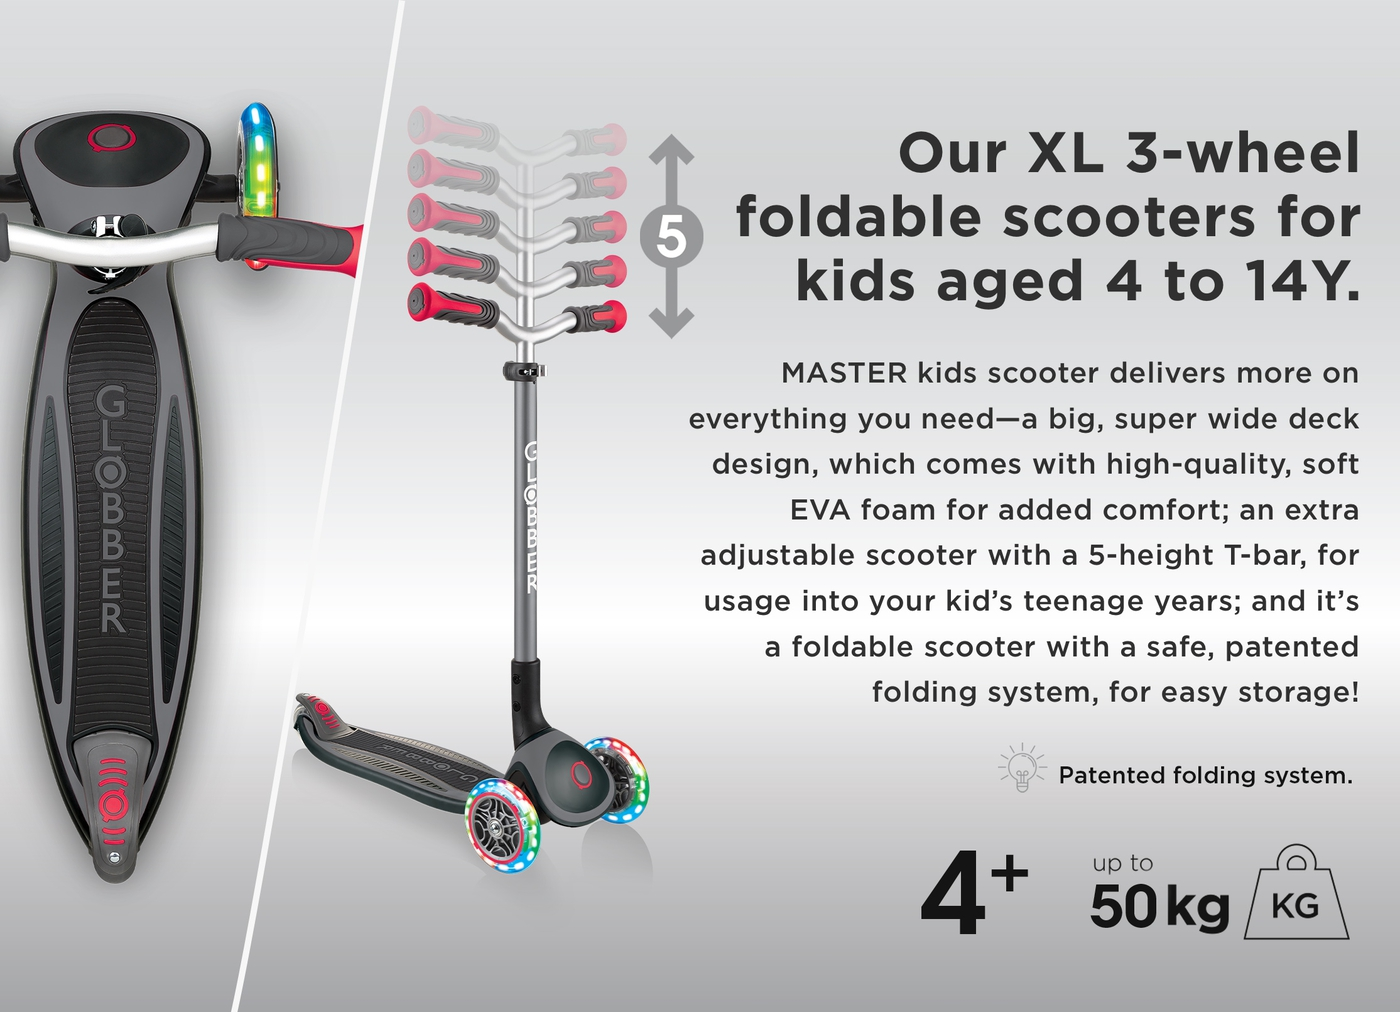 Our XL 3-wheel foldable scooters for kids aged 4 to 14Y.